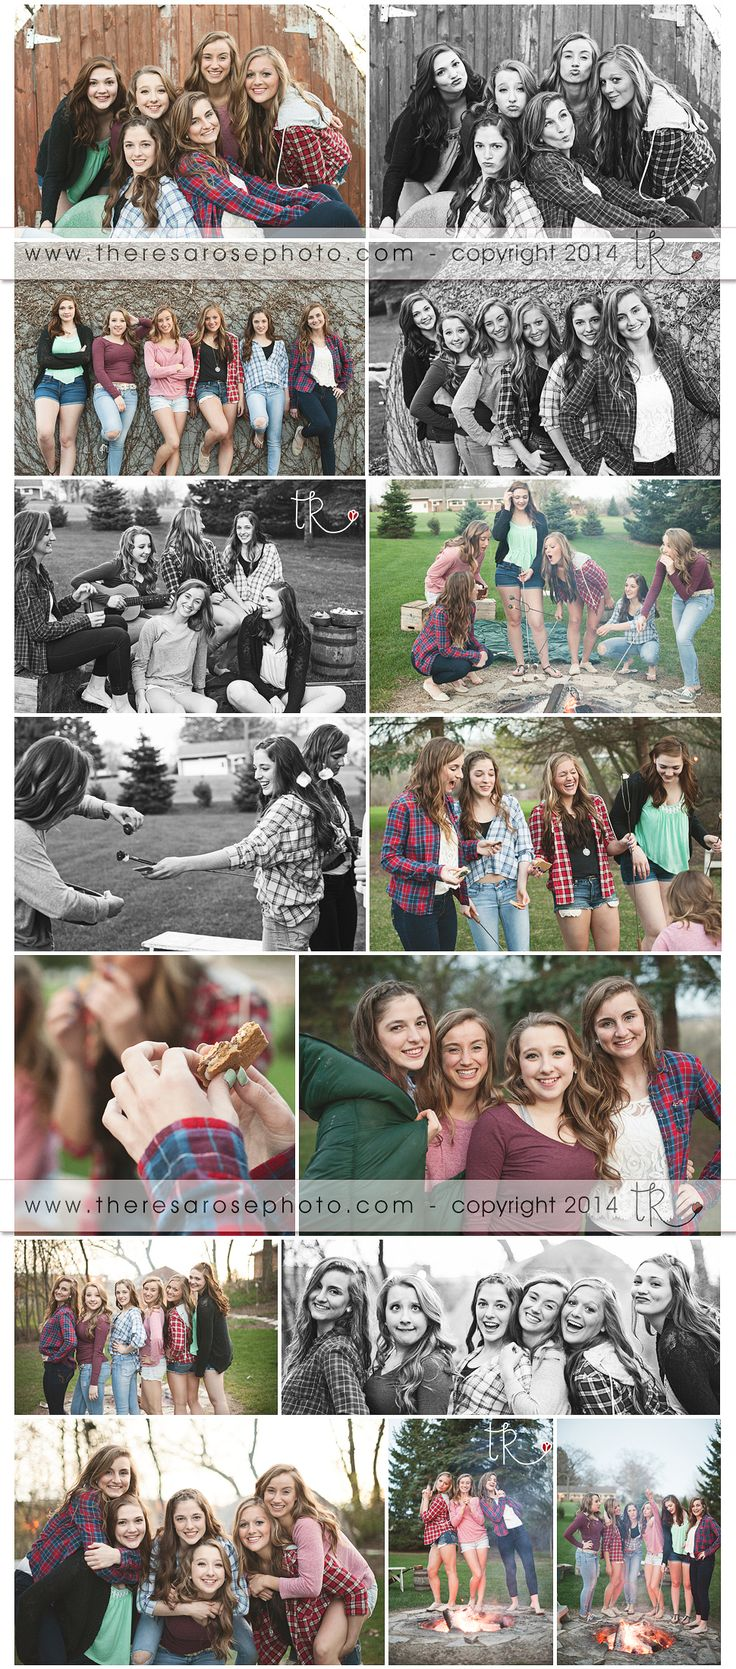 Friends by campfire photos - Theresa Rose Photography